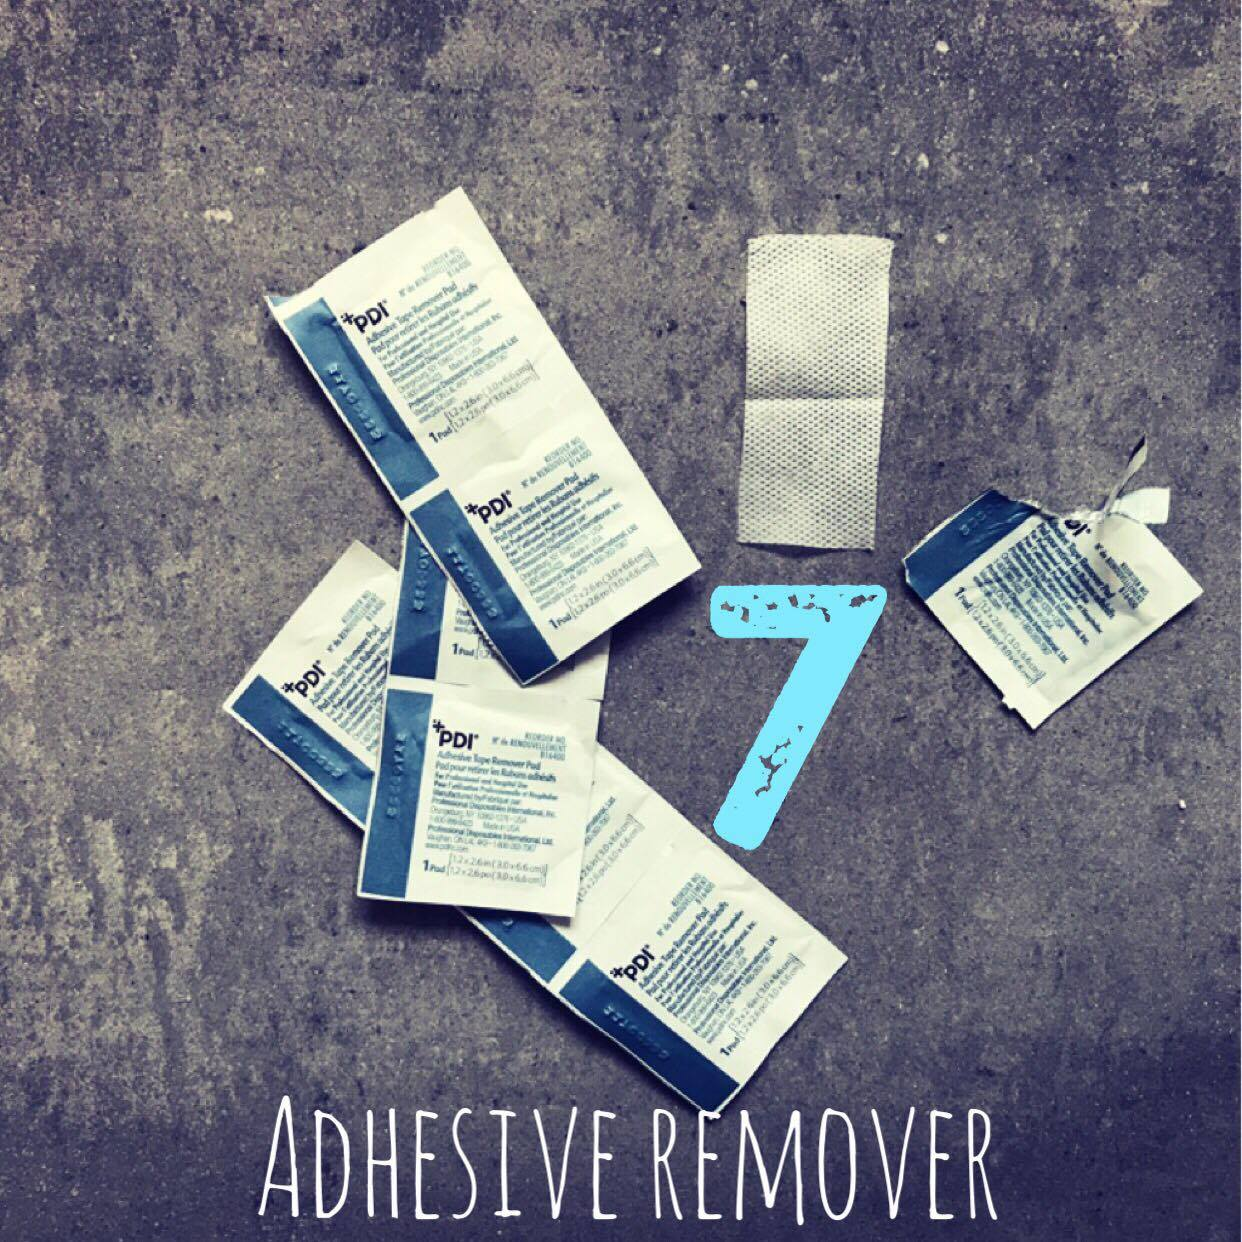 7. Adhesive Remover  As mentioned above, g tubes extensions and taping become a huge part of your daily routine. Tape always leaves a dark sticky residue after pulling it on and off day in and day out. I use these  adhesive remover pads  before bath time. It's almost like Goo Gone but for the body. It does have a strong scent from the alcohol in them so we do a warm sudsy bath right after. We also 'collect' these from the hospital at the end of each trip.